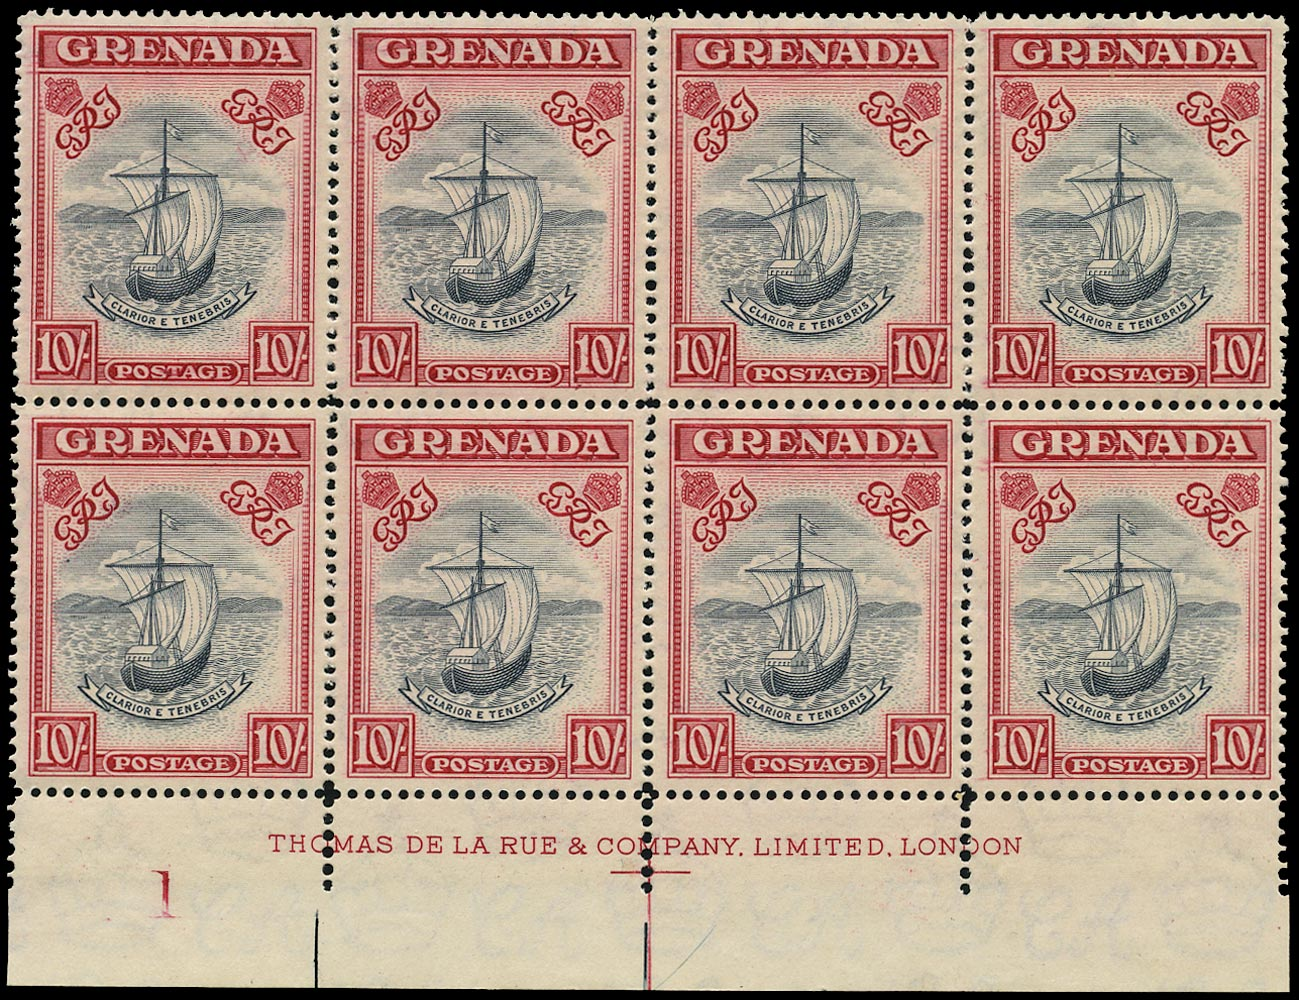 GRENADA 1938  SG163e Mint unmounted 10s blue-black and carmine perf 14 imprint and plate block